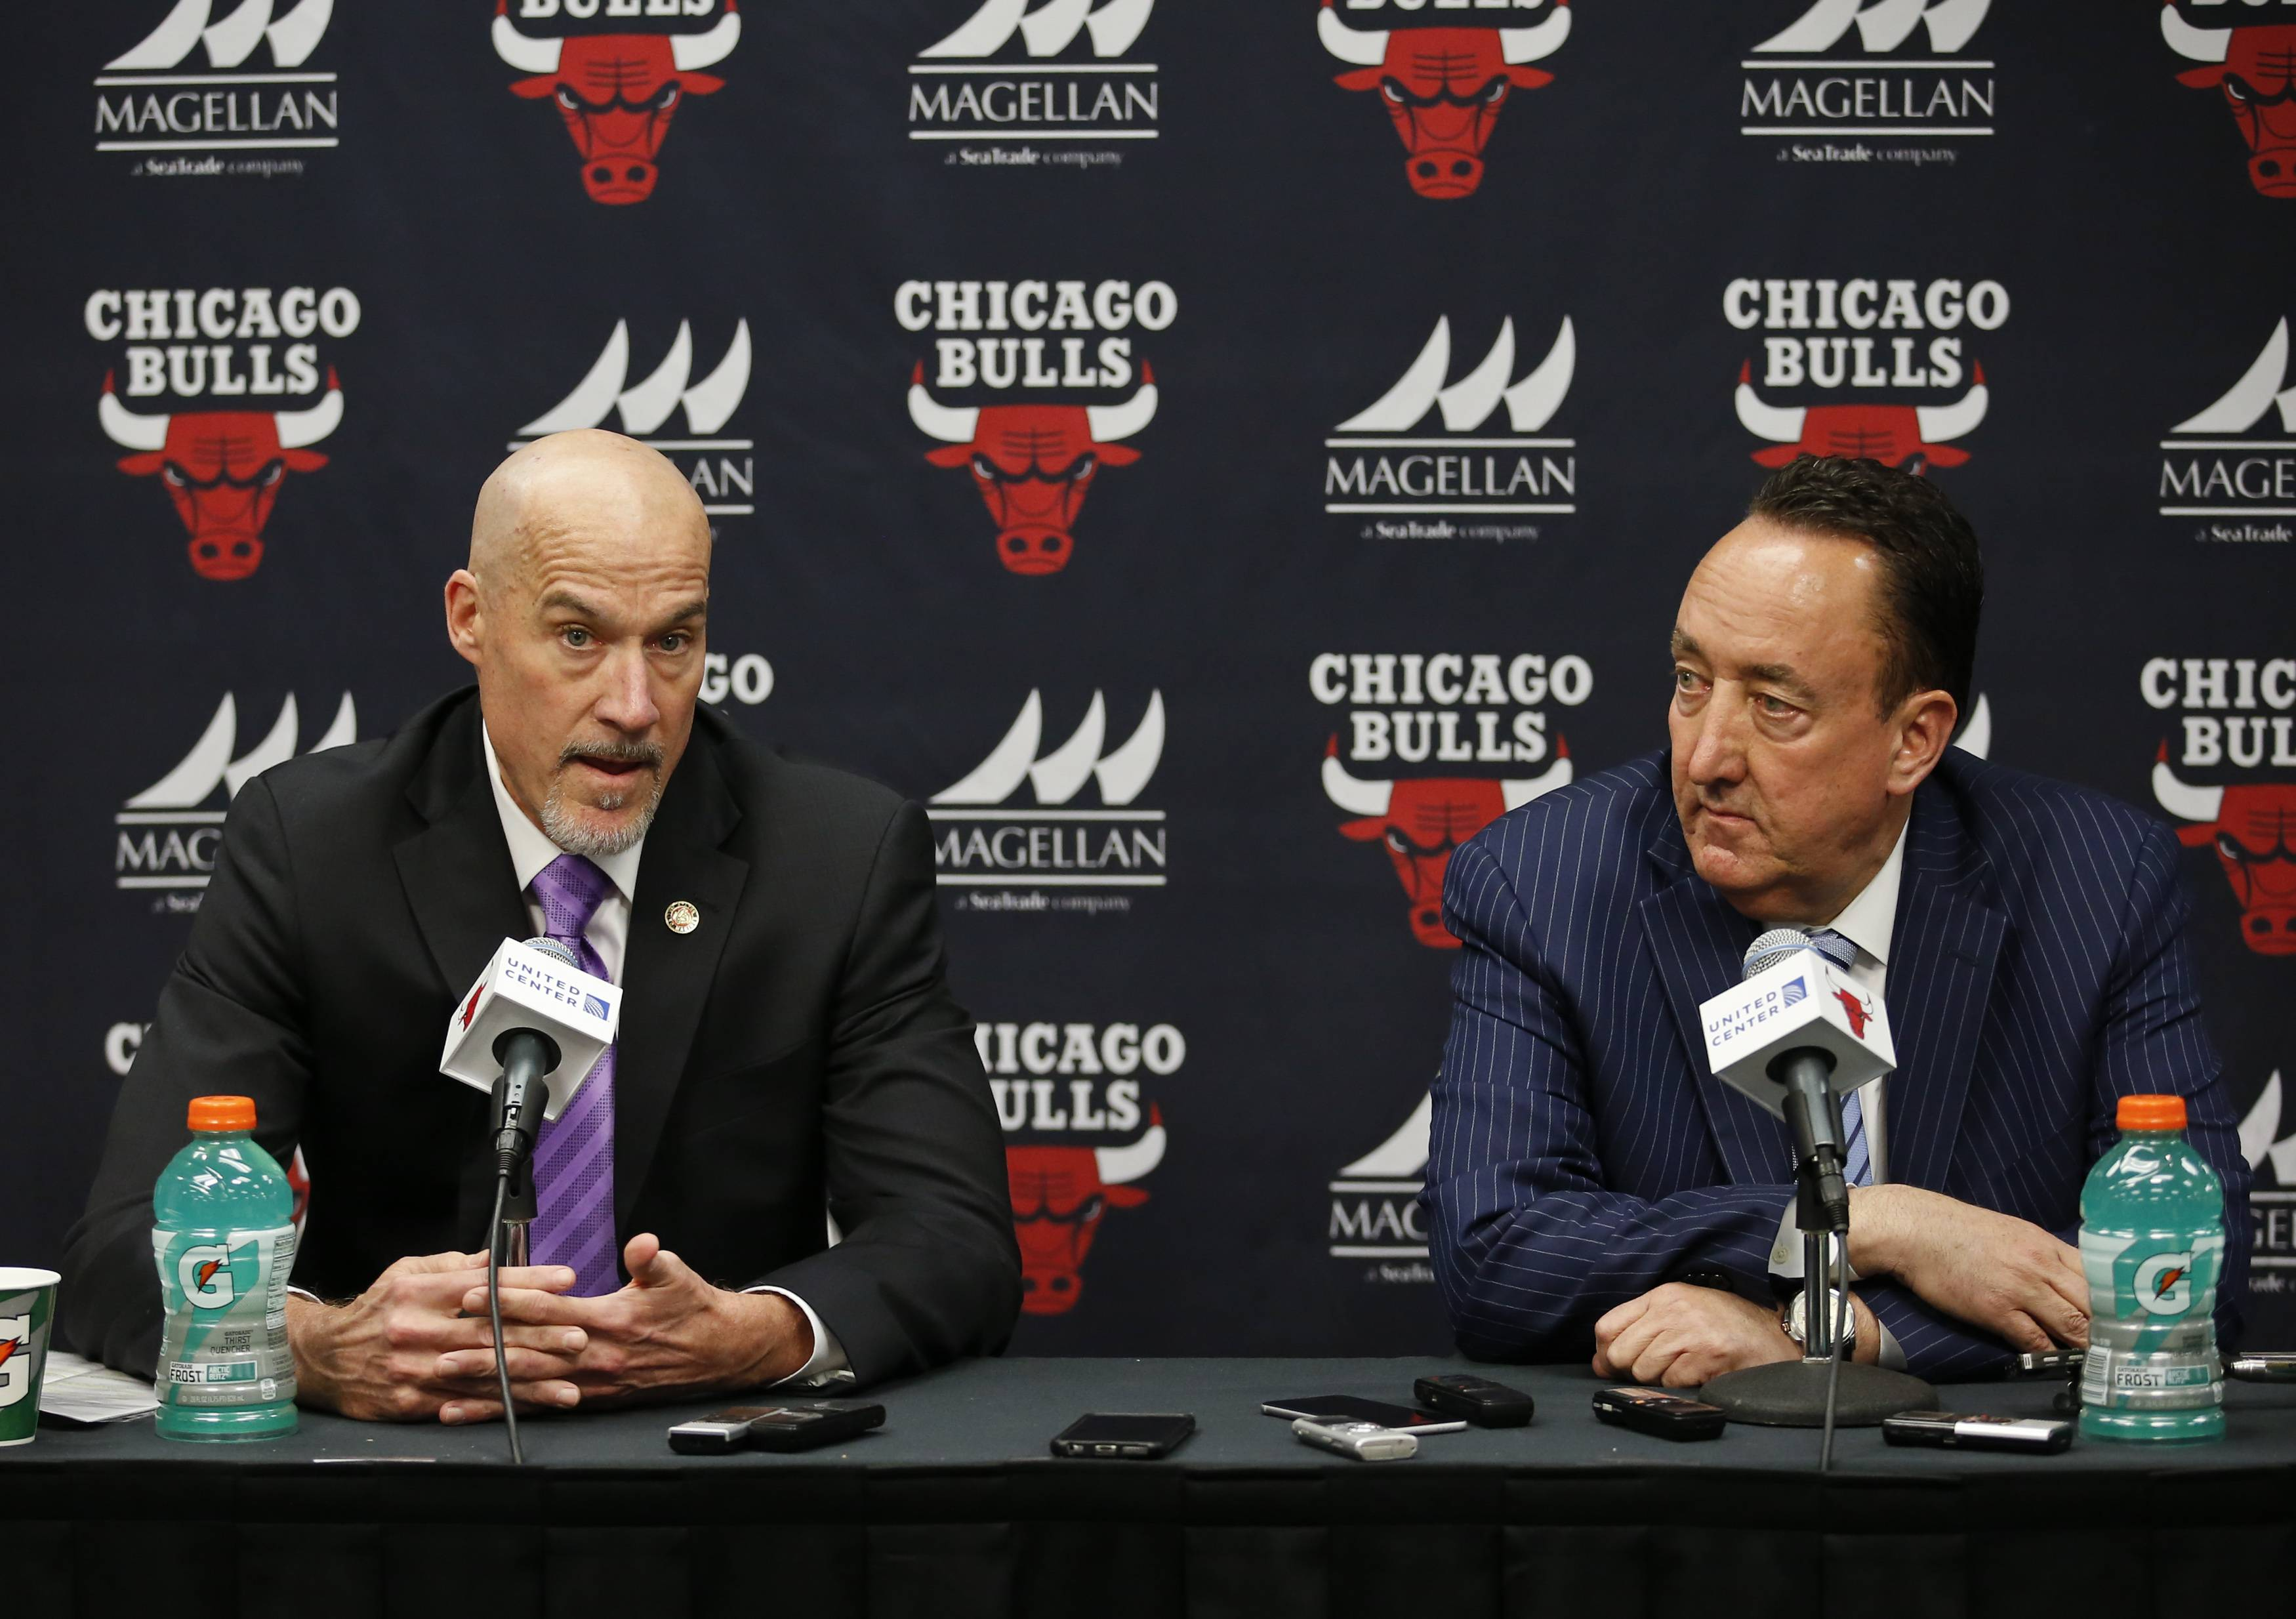 While Sixers find success, Bulls try to shortcut 'The Process'